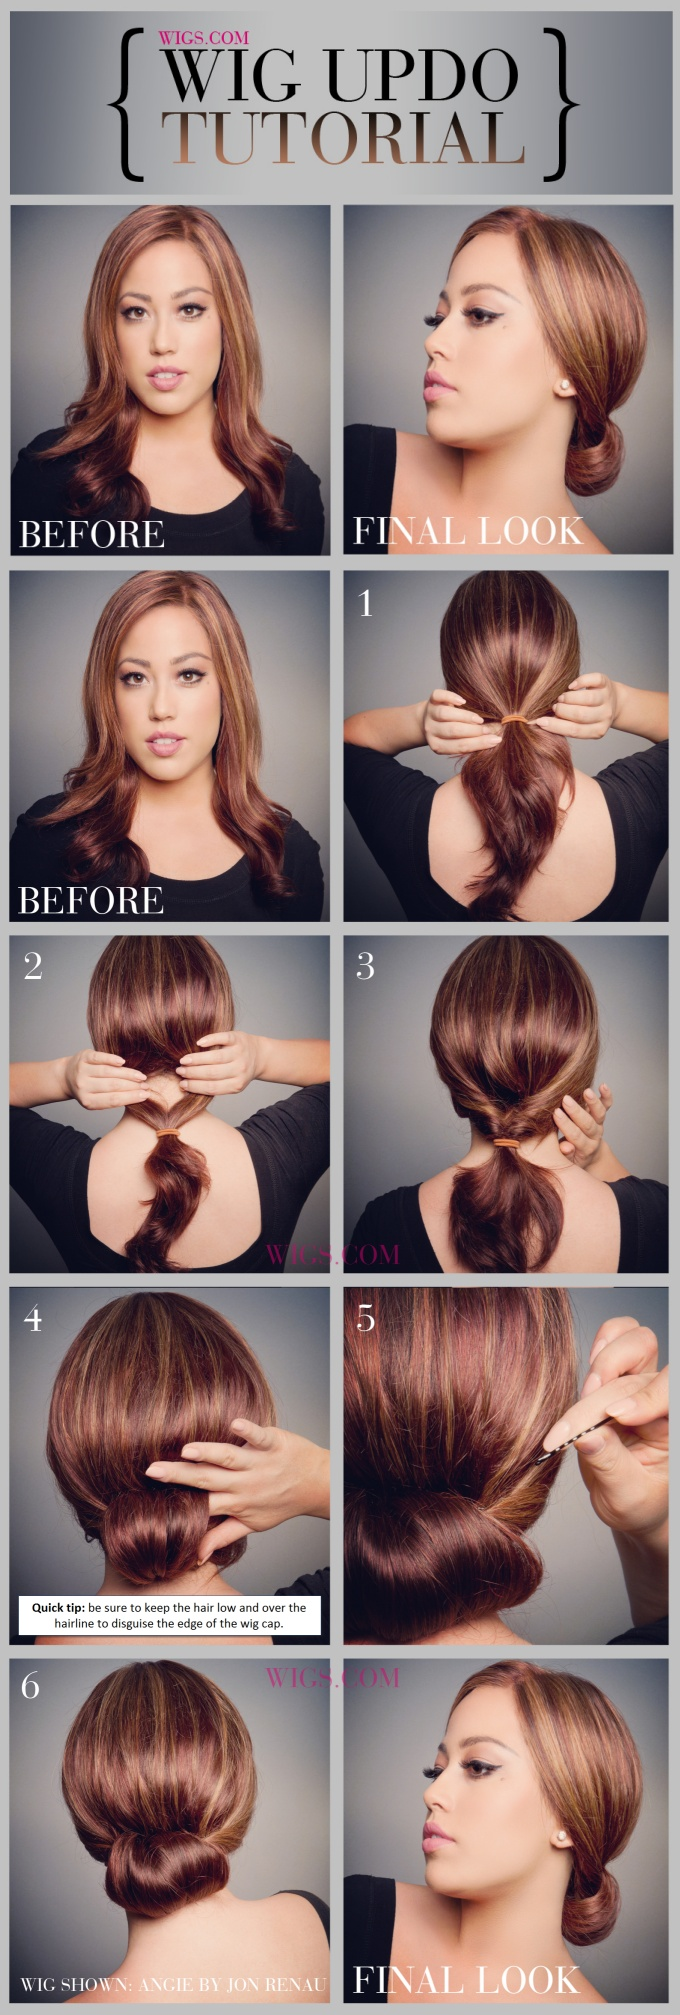 best hair cuts images on pinterest hair makeup braids and hair dos